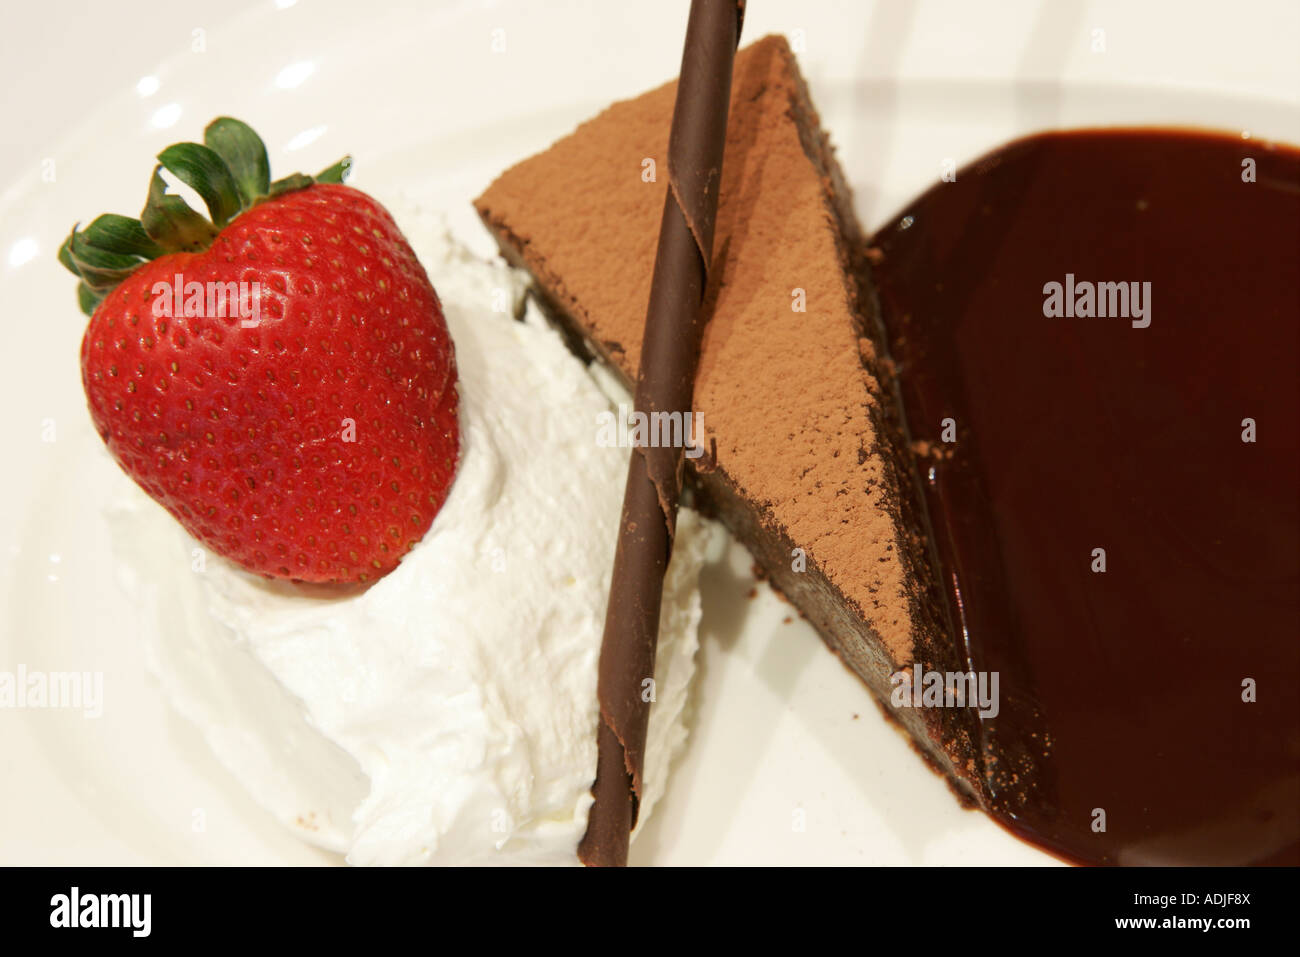 Virginia Leesburg King Street Lightfoot Restaurant mocha yaya flowerless chocolate cake dining food dessert - Stock Image